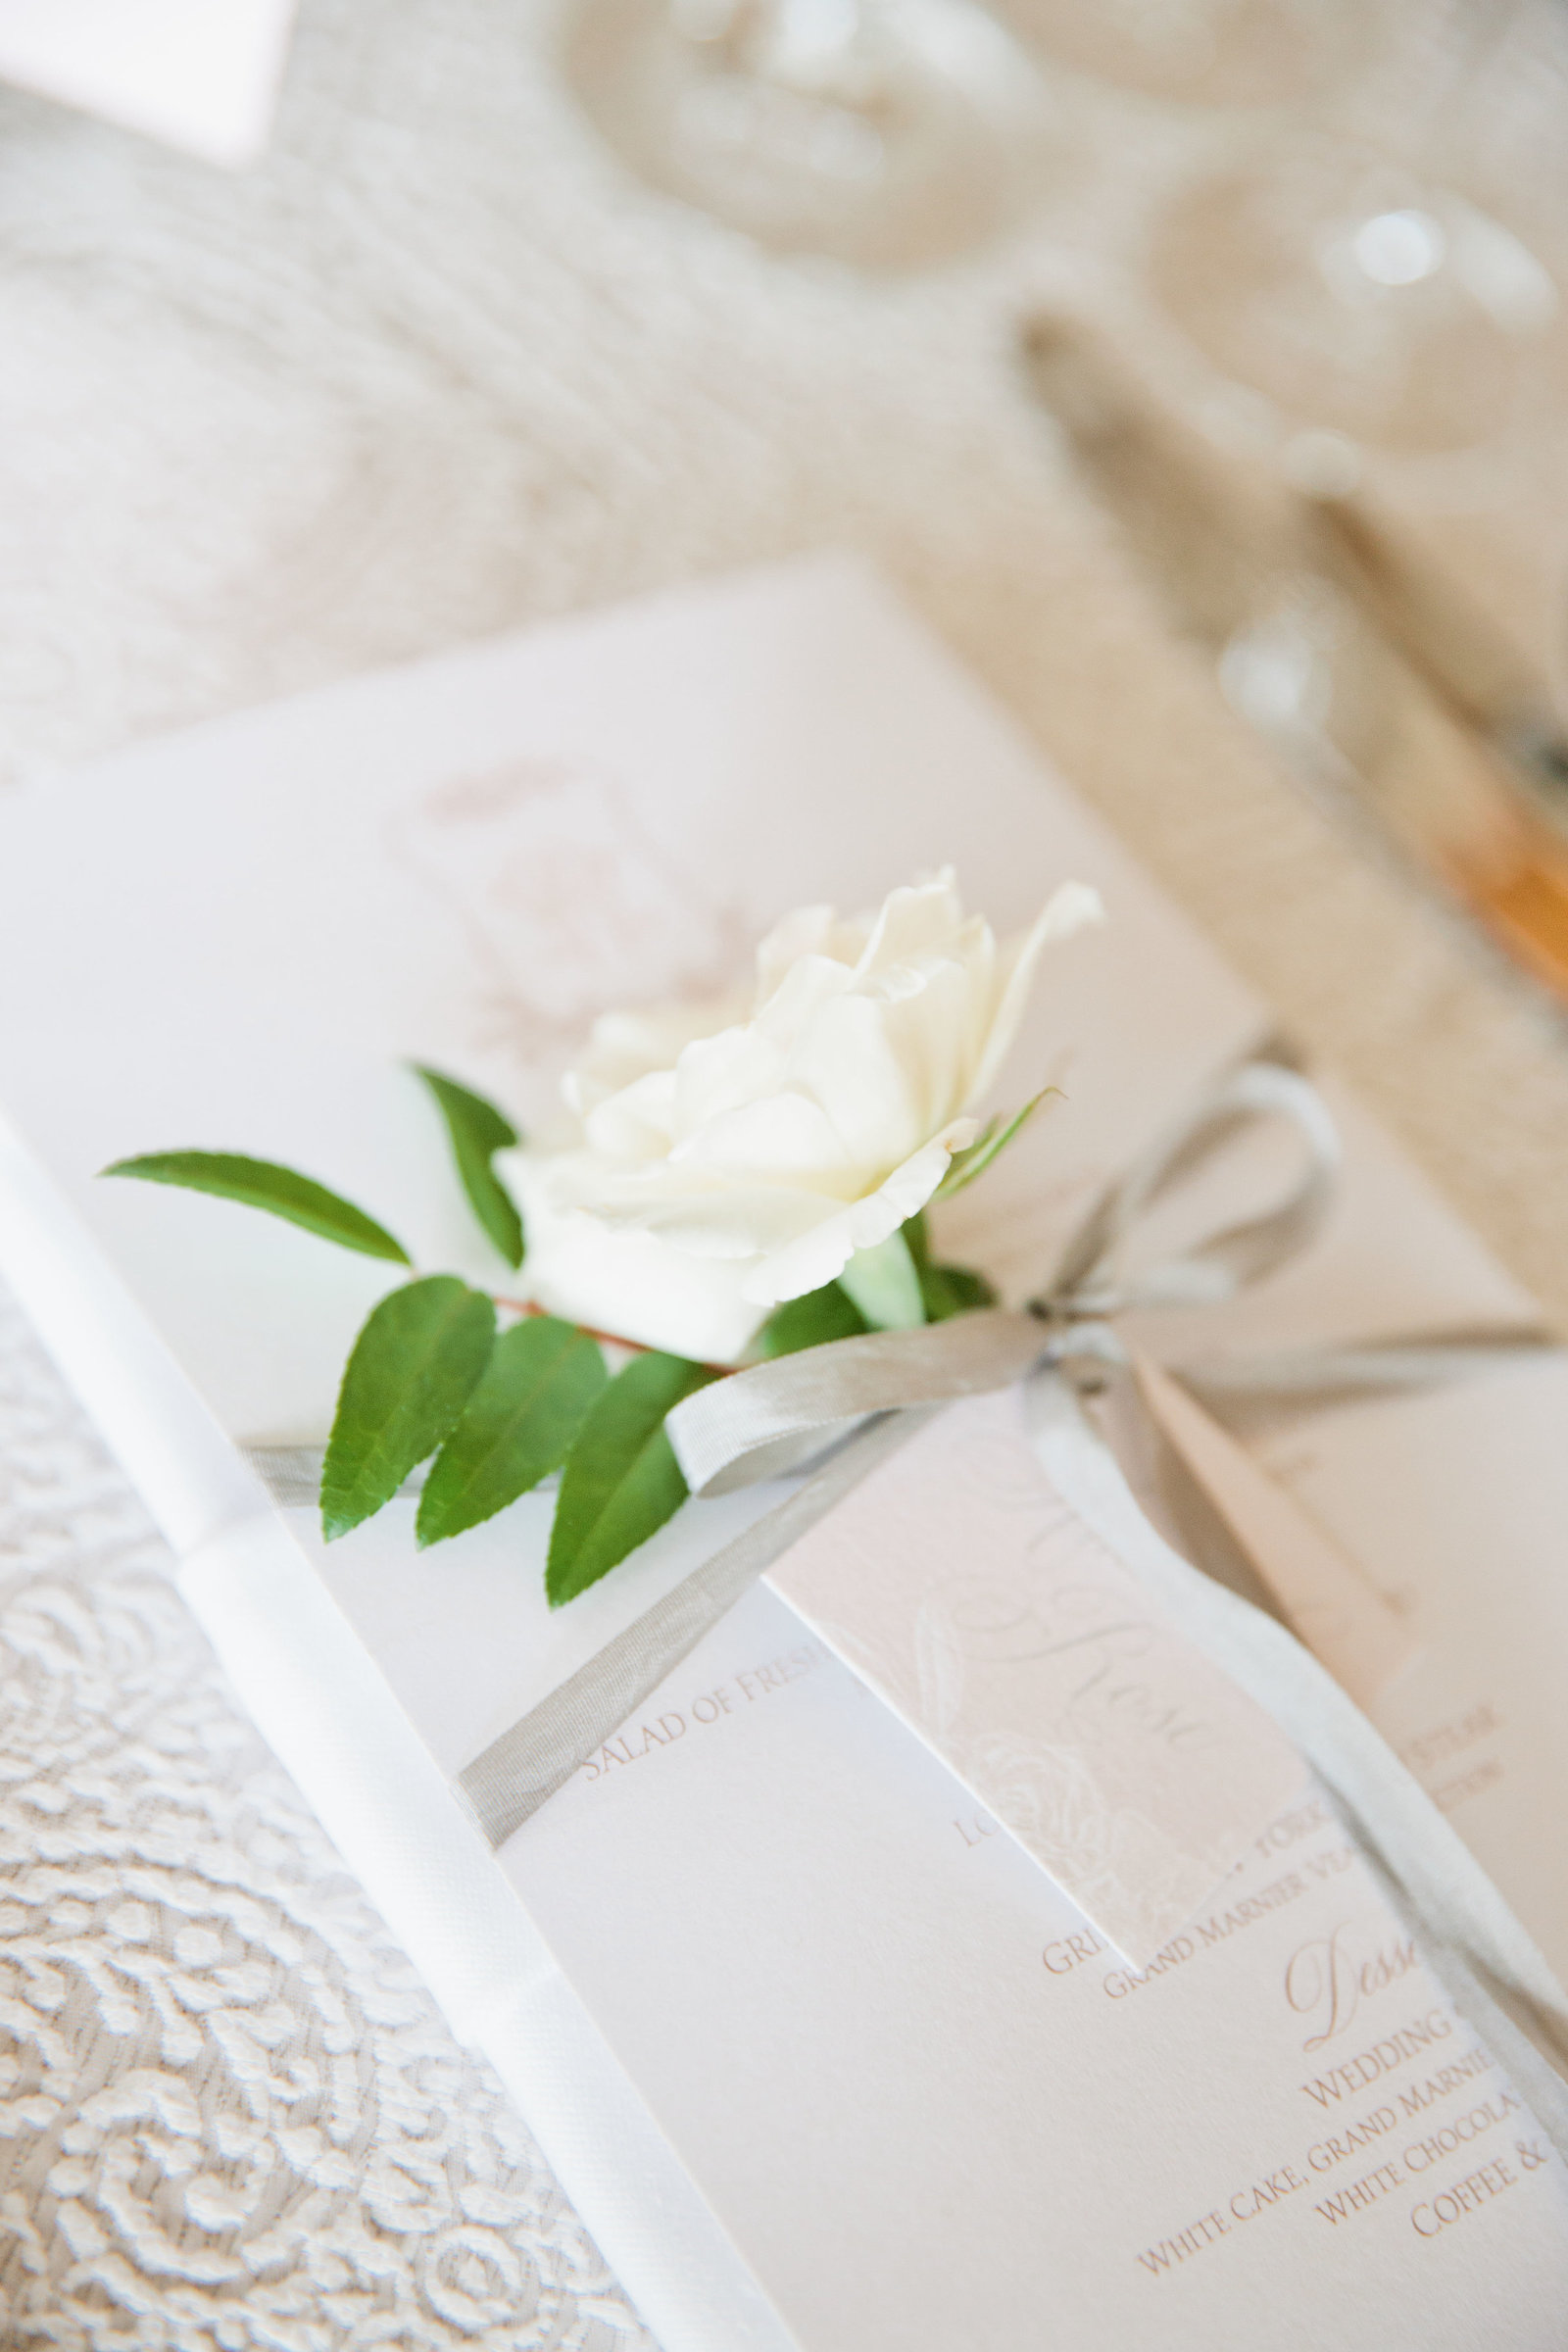 Menu cards with hand tags and floral sprigs